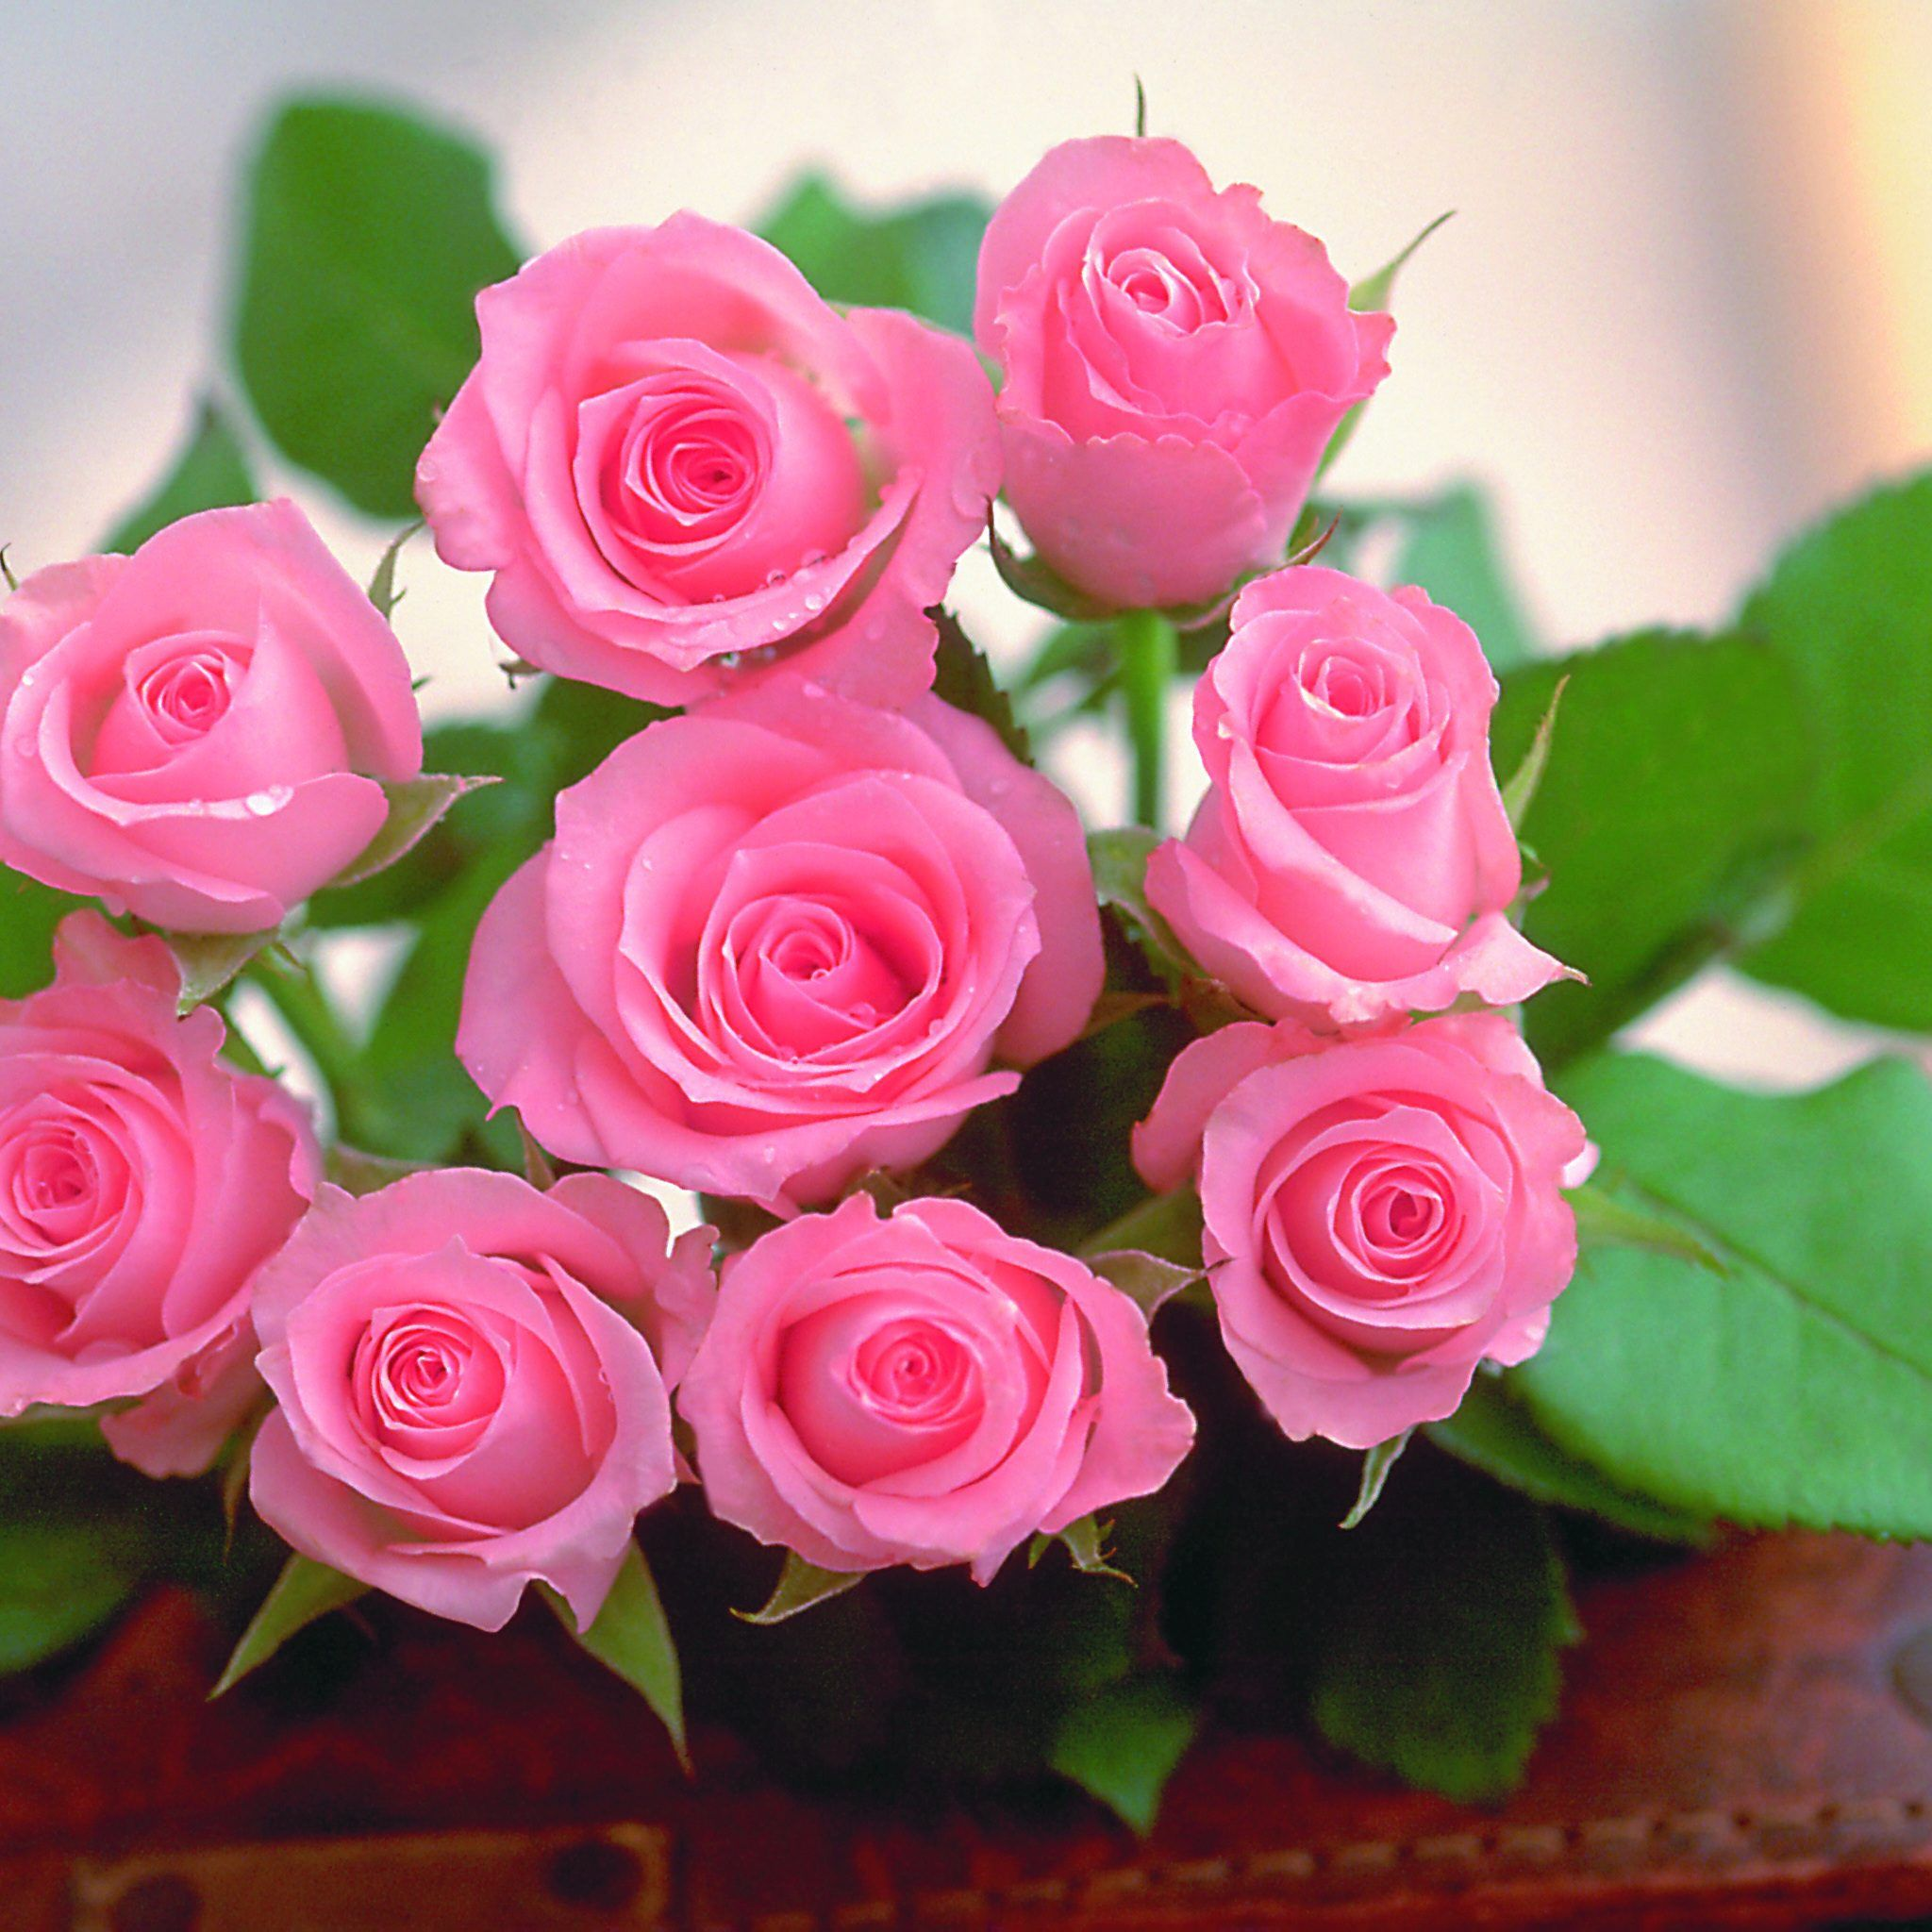 Pin By Besnikh On Beautiful Flowers With Images Beautiful Flowers Wallpapers Pink Rose Flower Flower Seeds